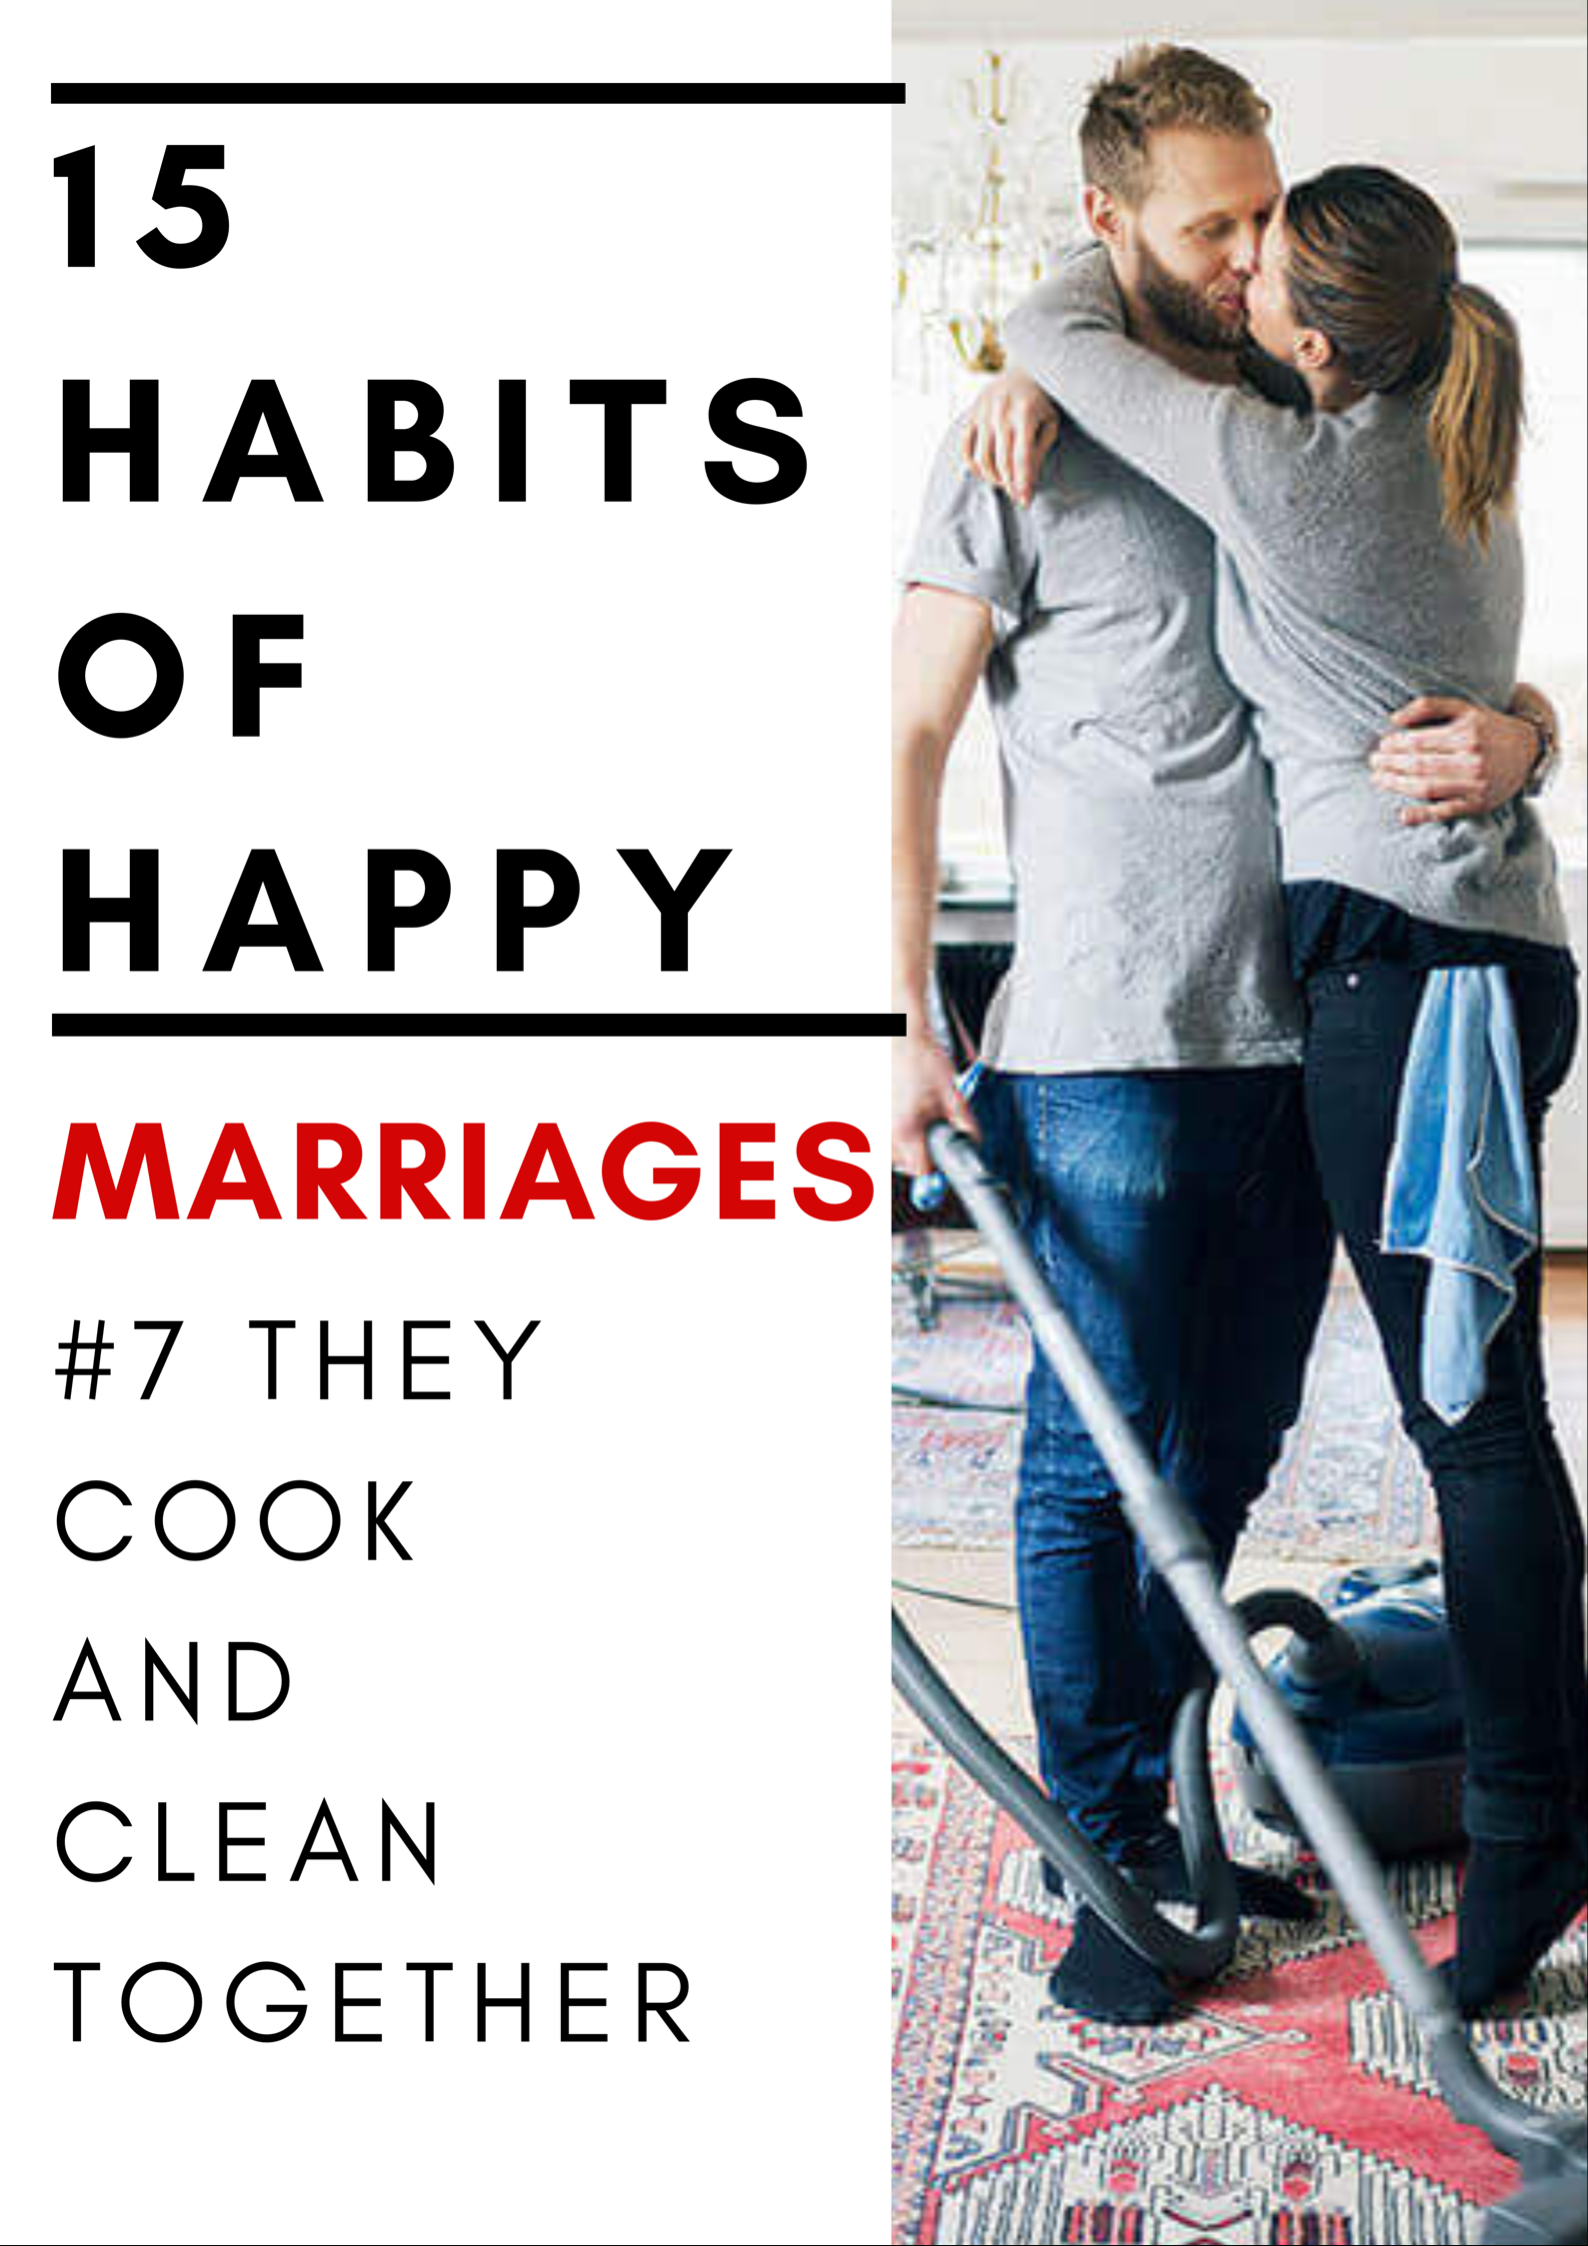 15 Habits Of Happy Marriages